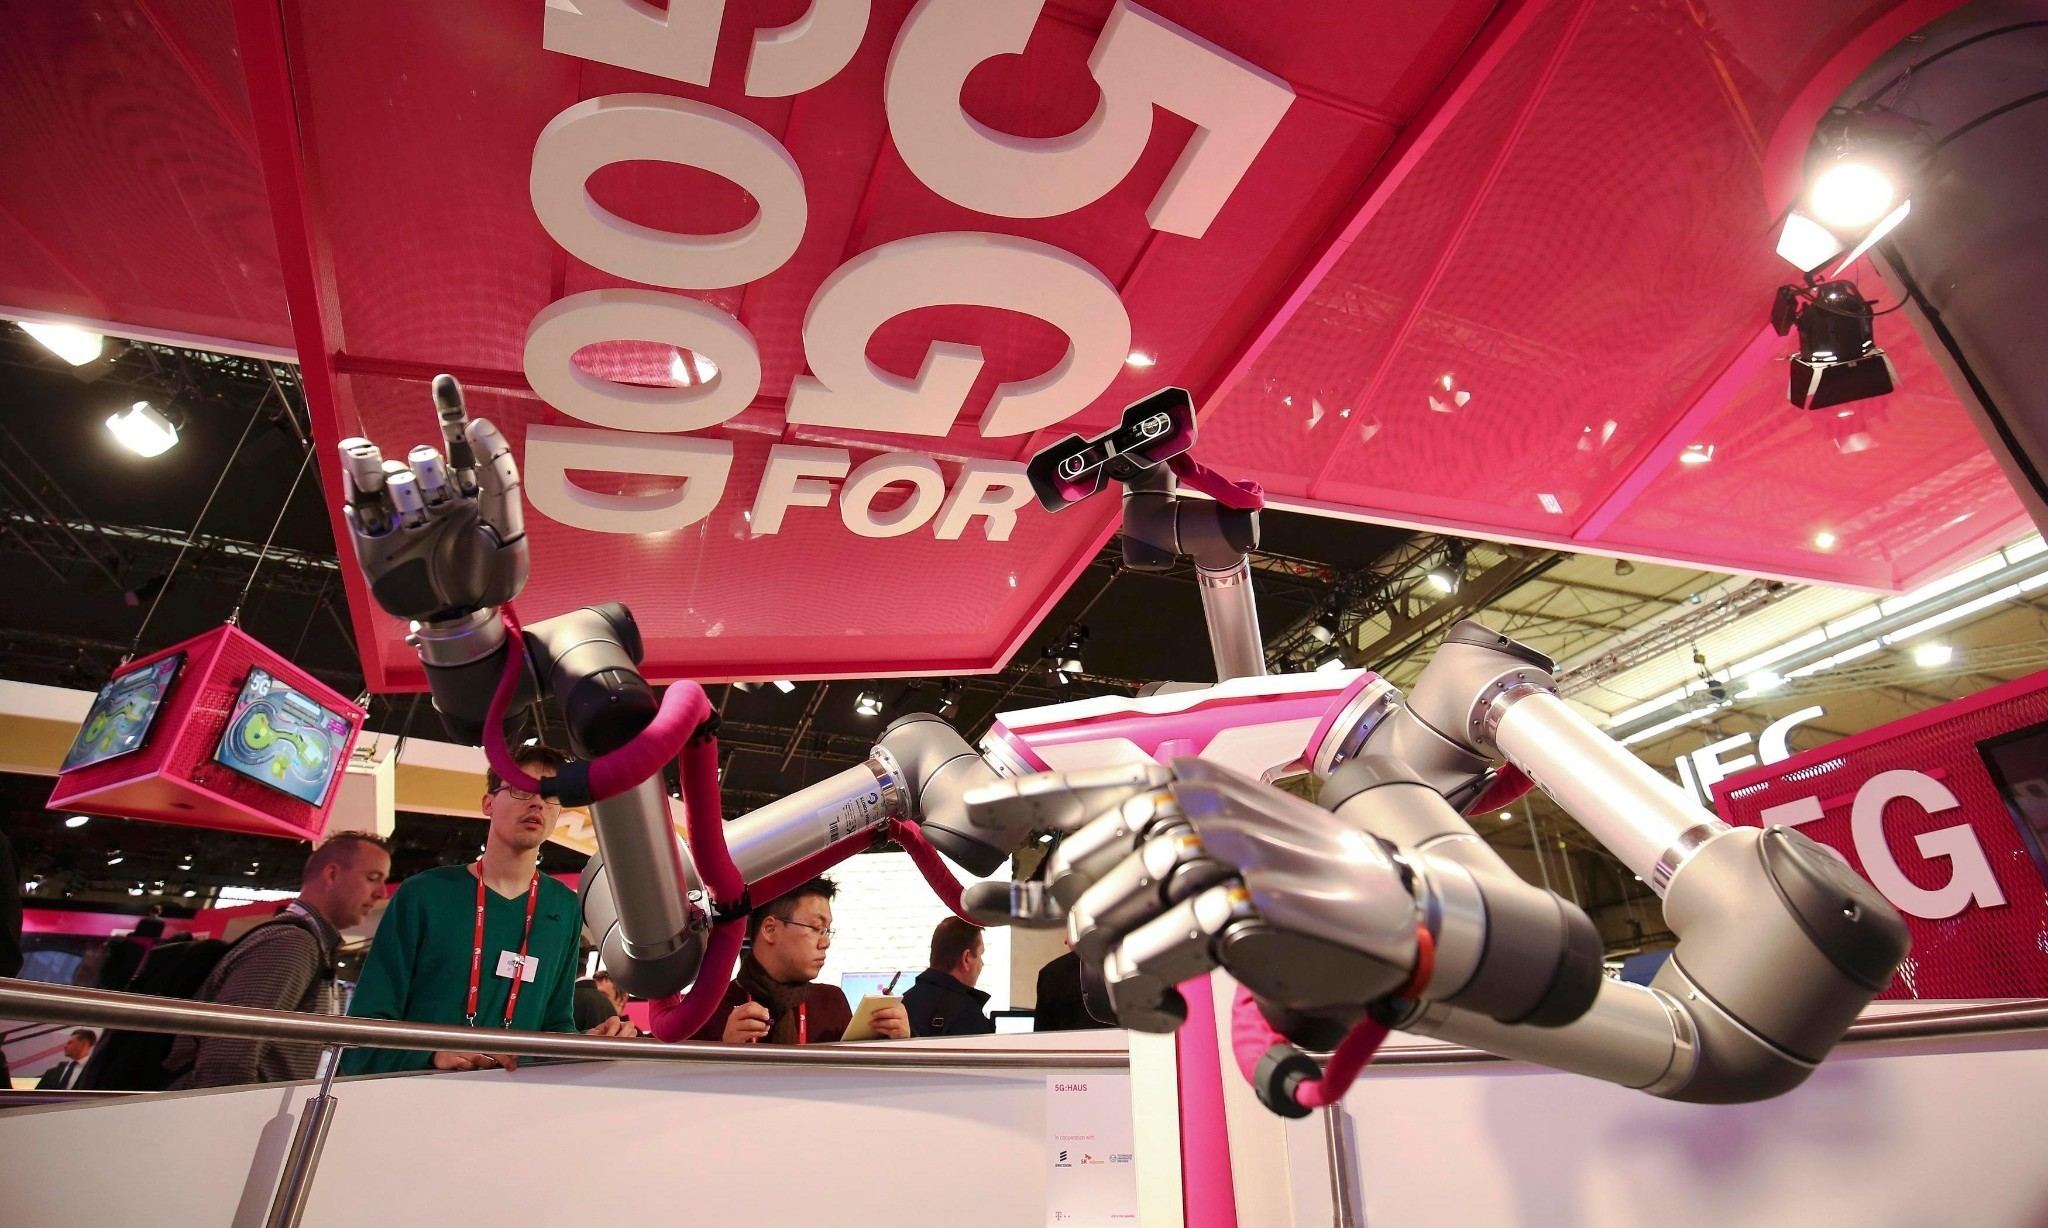 Robots delivering pizza and house viewing by VR: is 5G really the future?